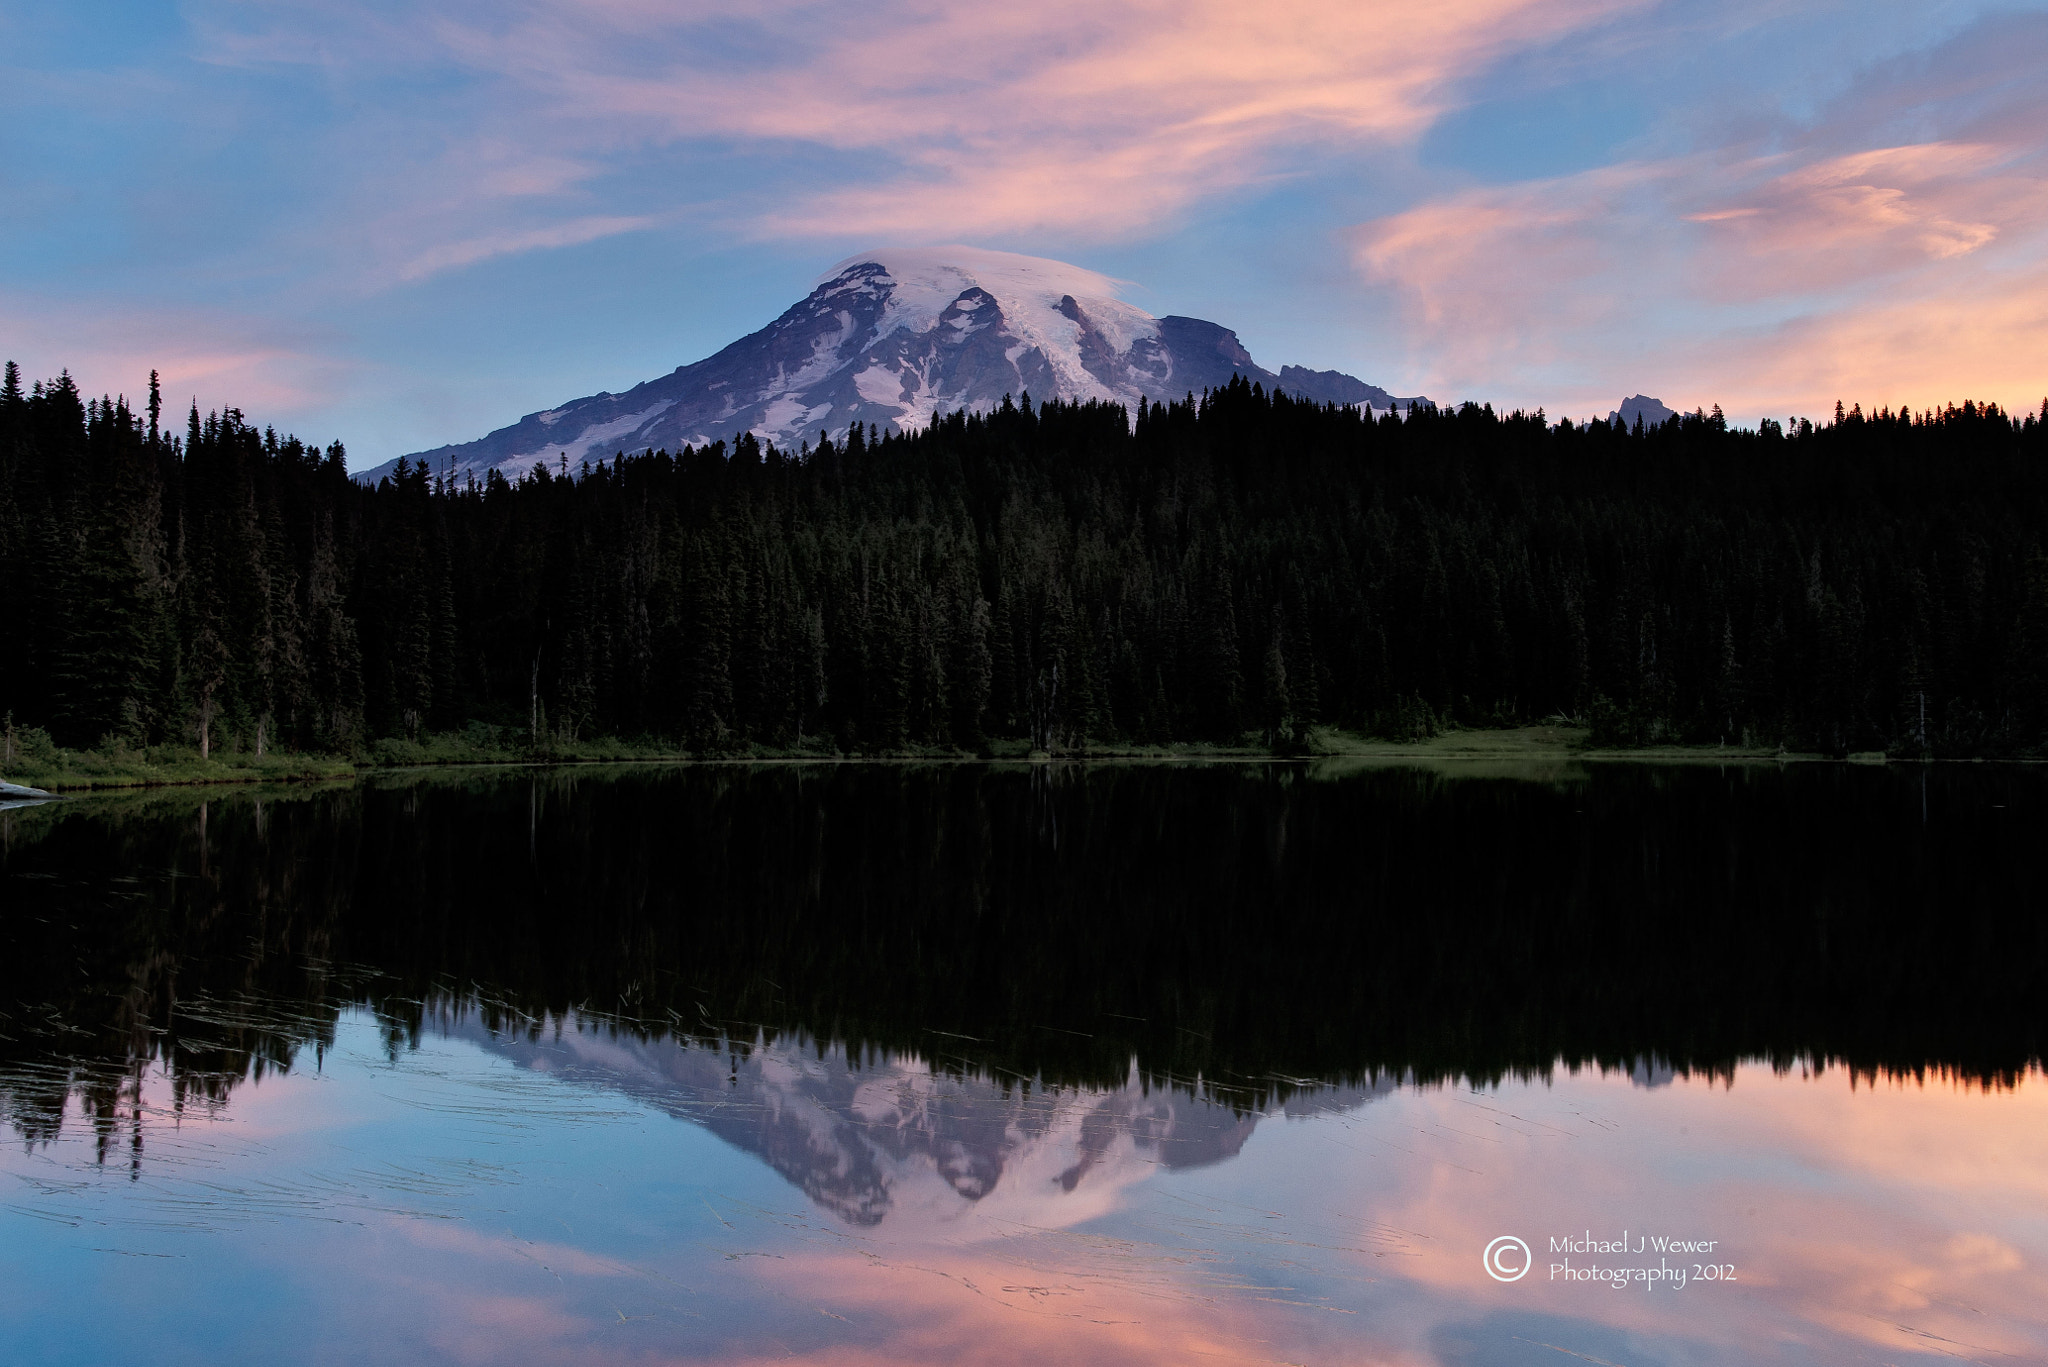 Photograph Reflection Lakes Mount Rainier National Park by Michael Wewer on 500px